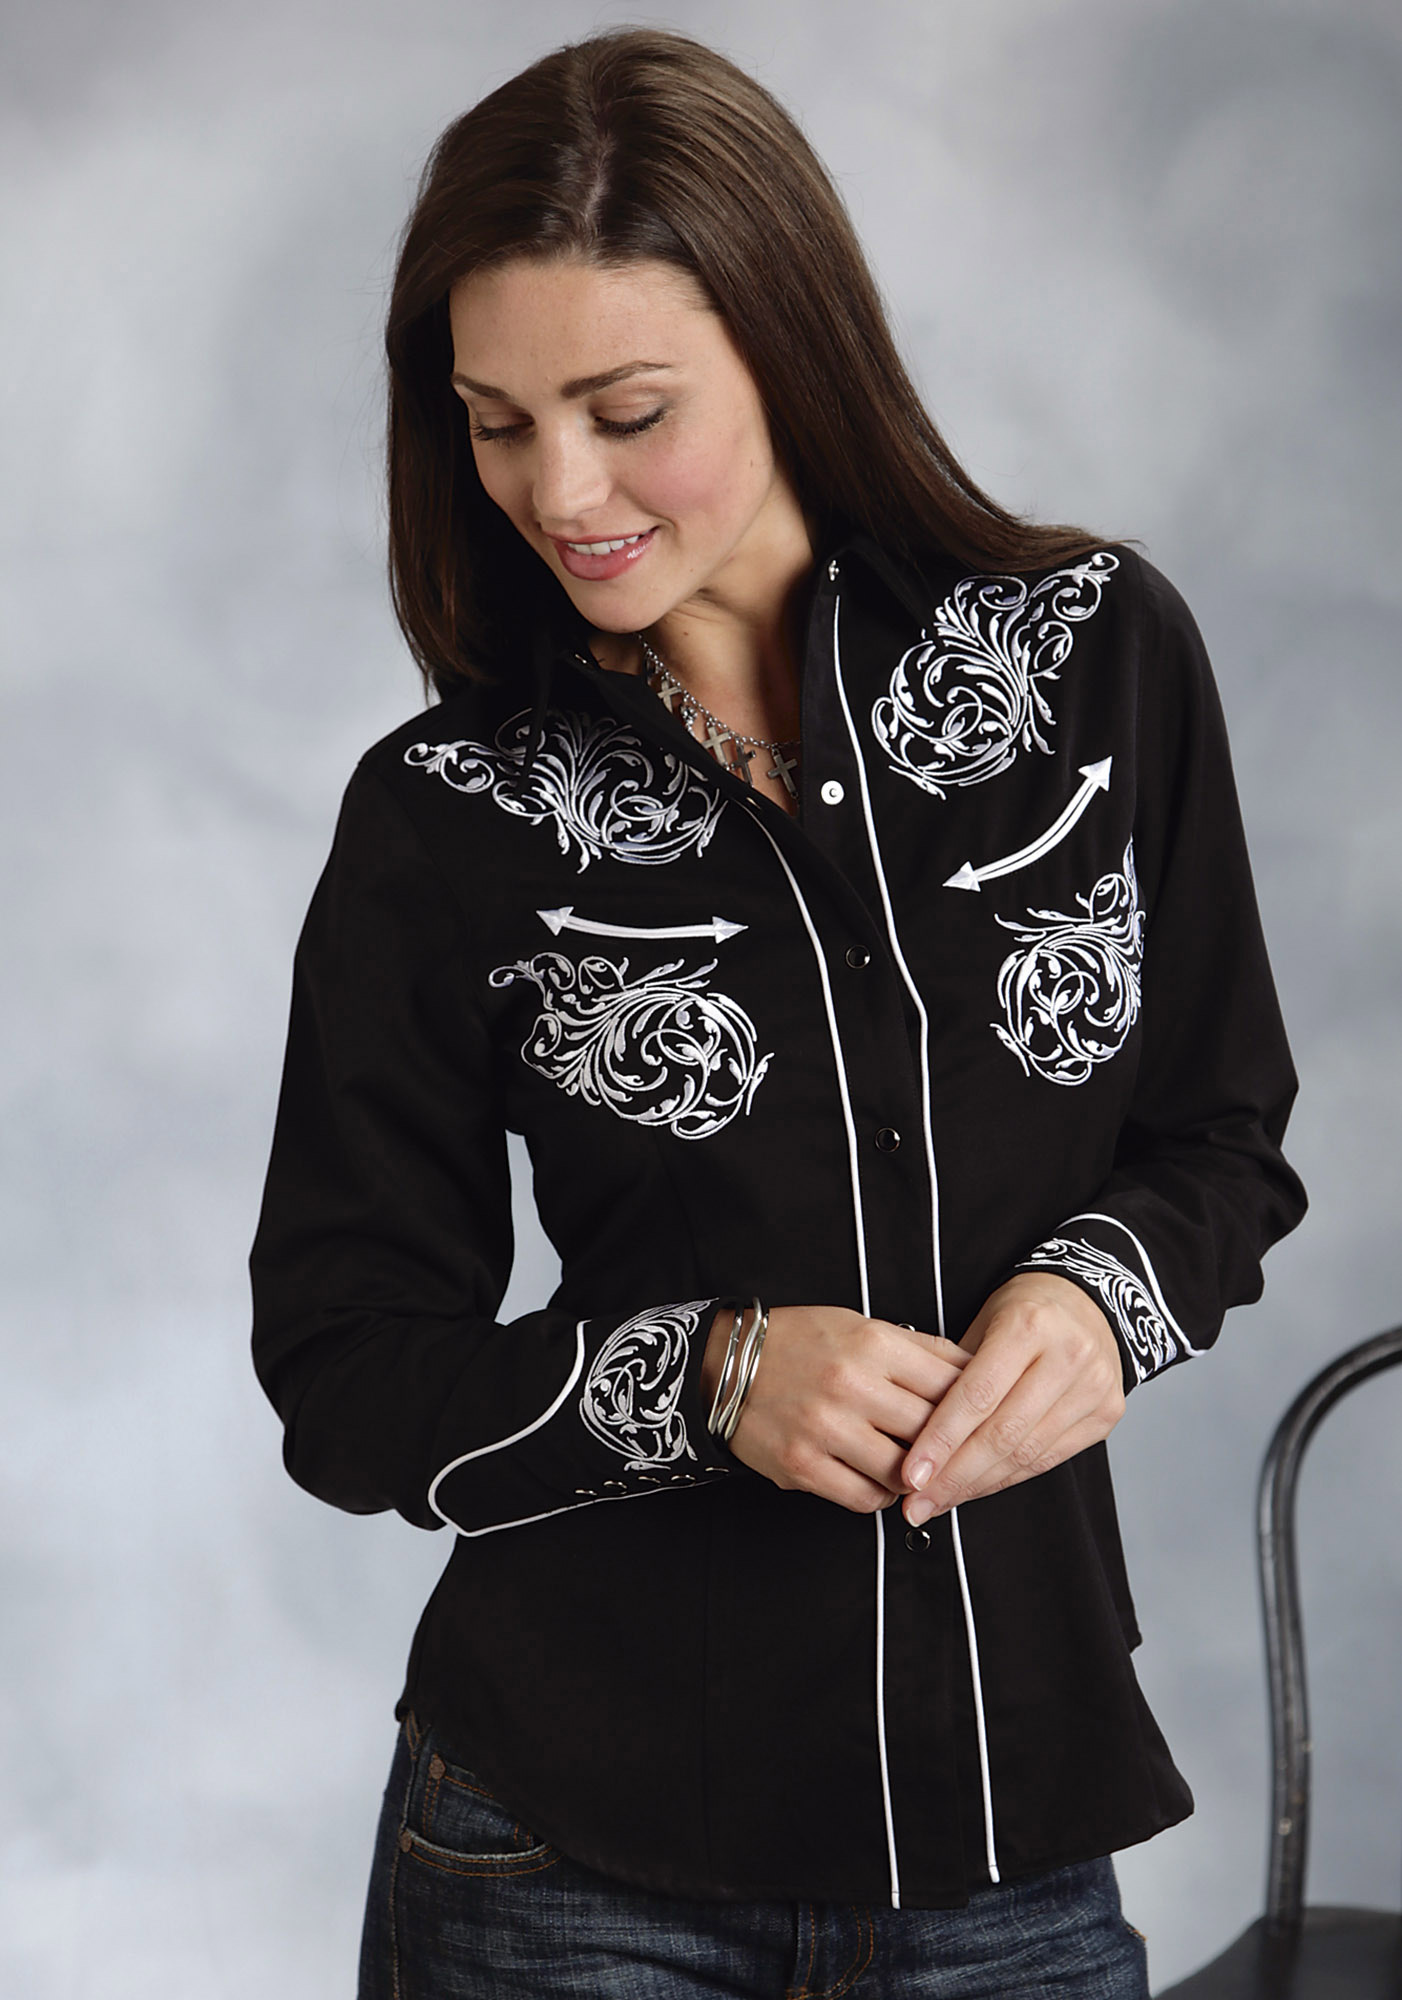 Women's Western Wear For everything you need to complete your country girl look, shop at Langston's. Our selection of stylish women's Western apparel, shoes and accessories includes all sorts of chic looks for ladies who like to embrace the rustic-yet-chic Western lifestyle.